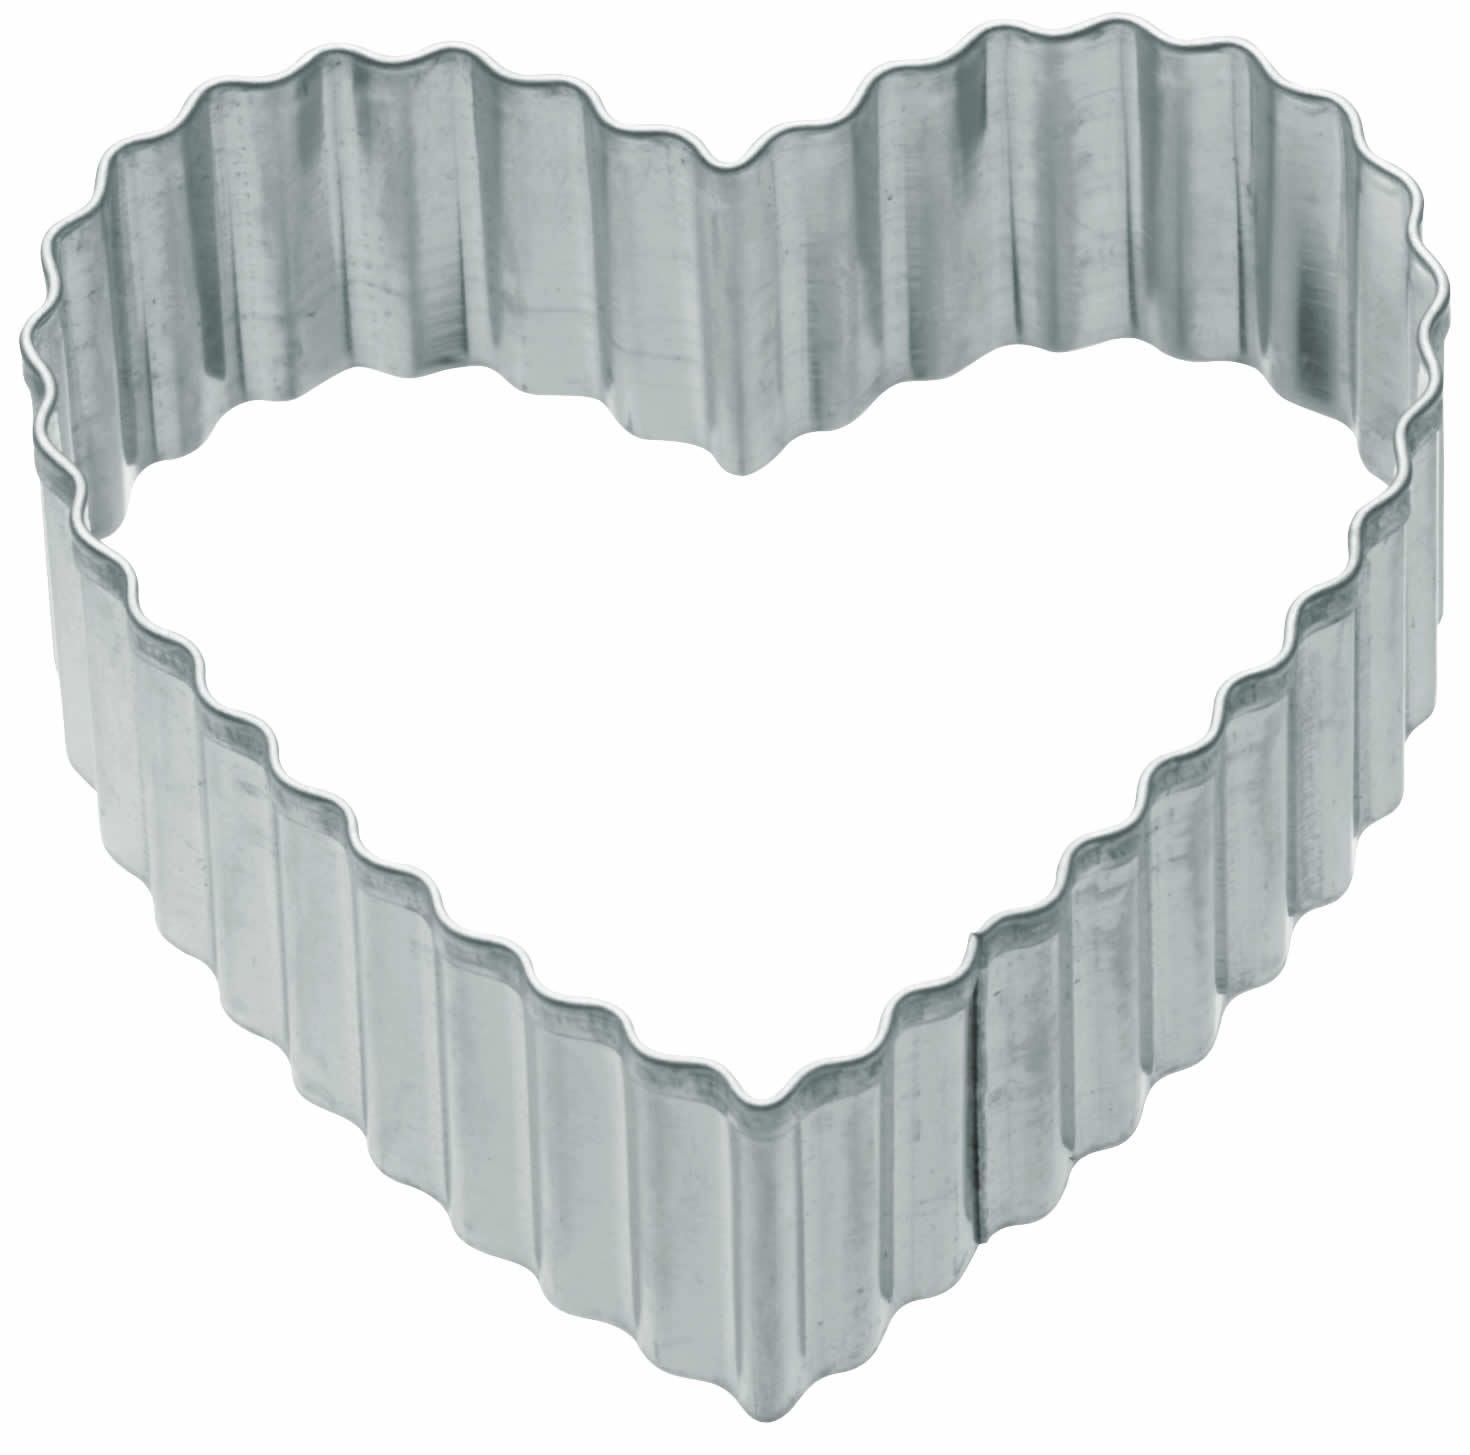 Kitchencraft 6cm Fluted Heart Shaped Metal Cookie Cutter